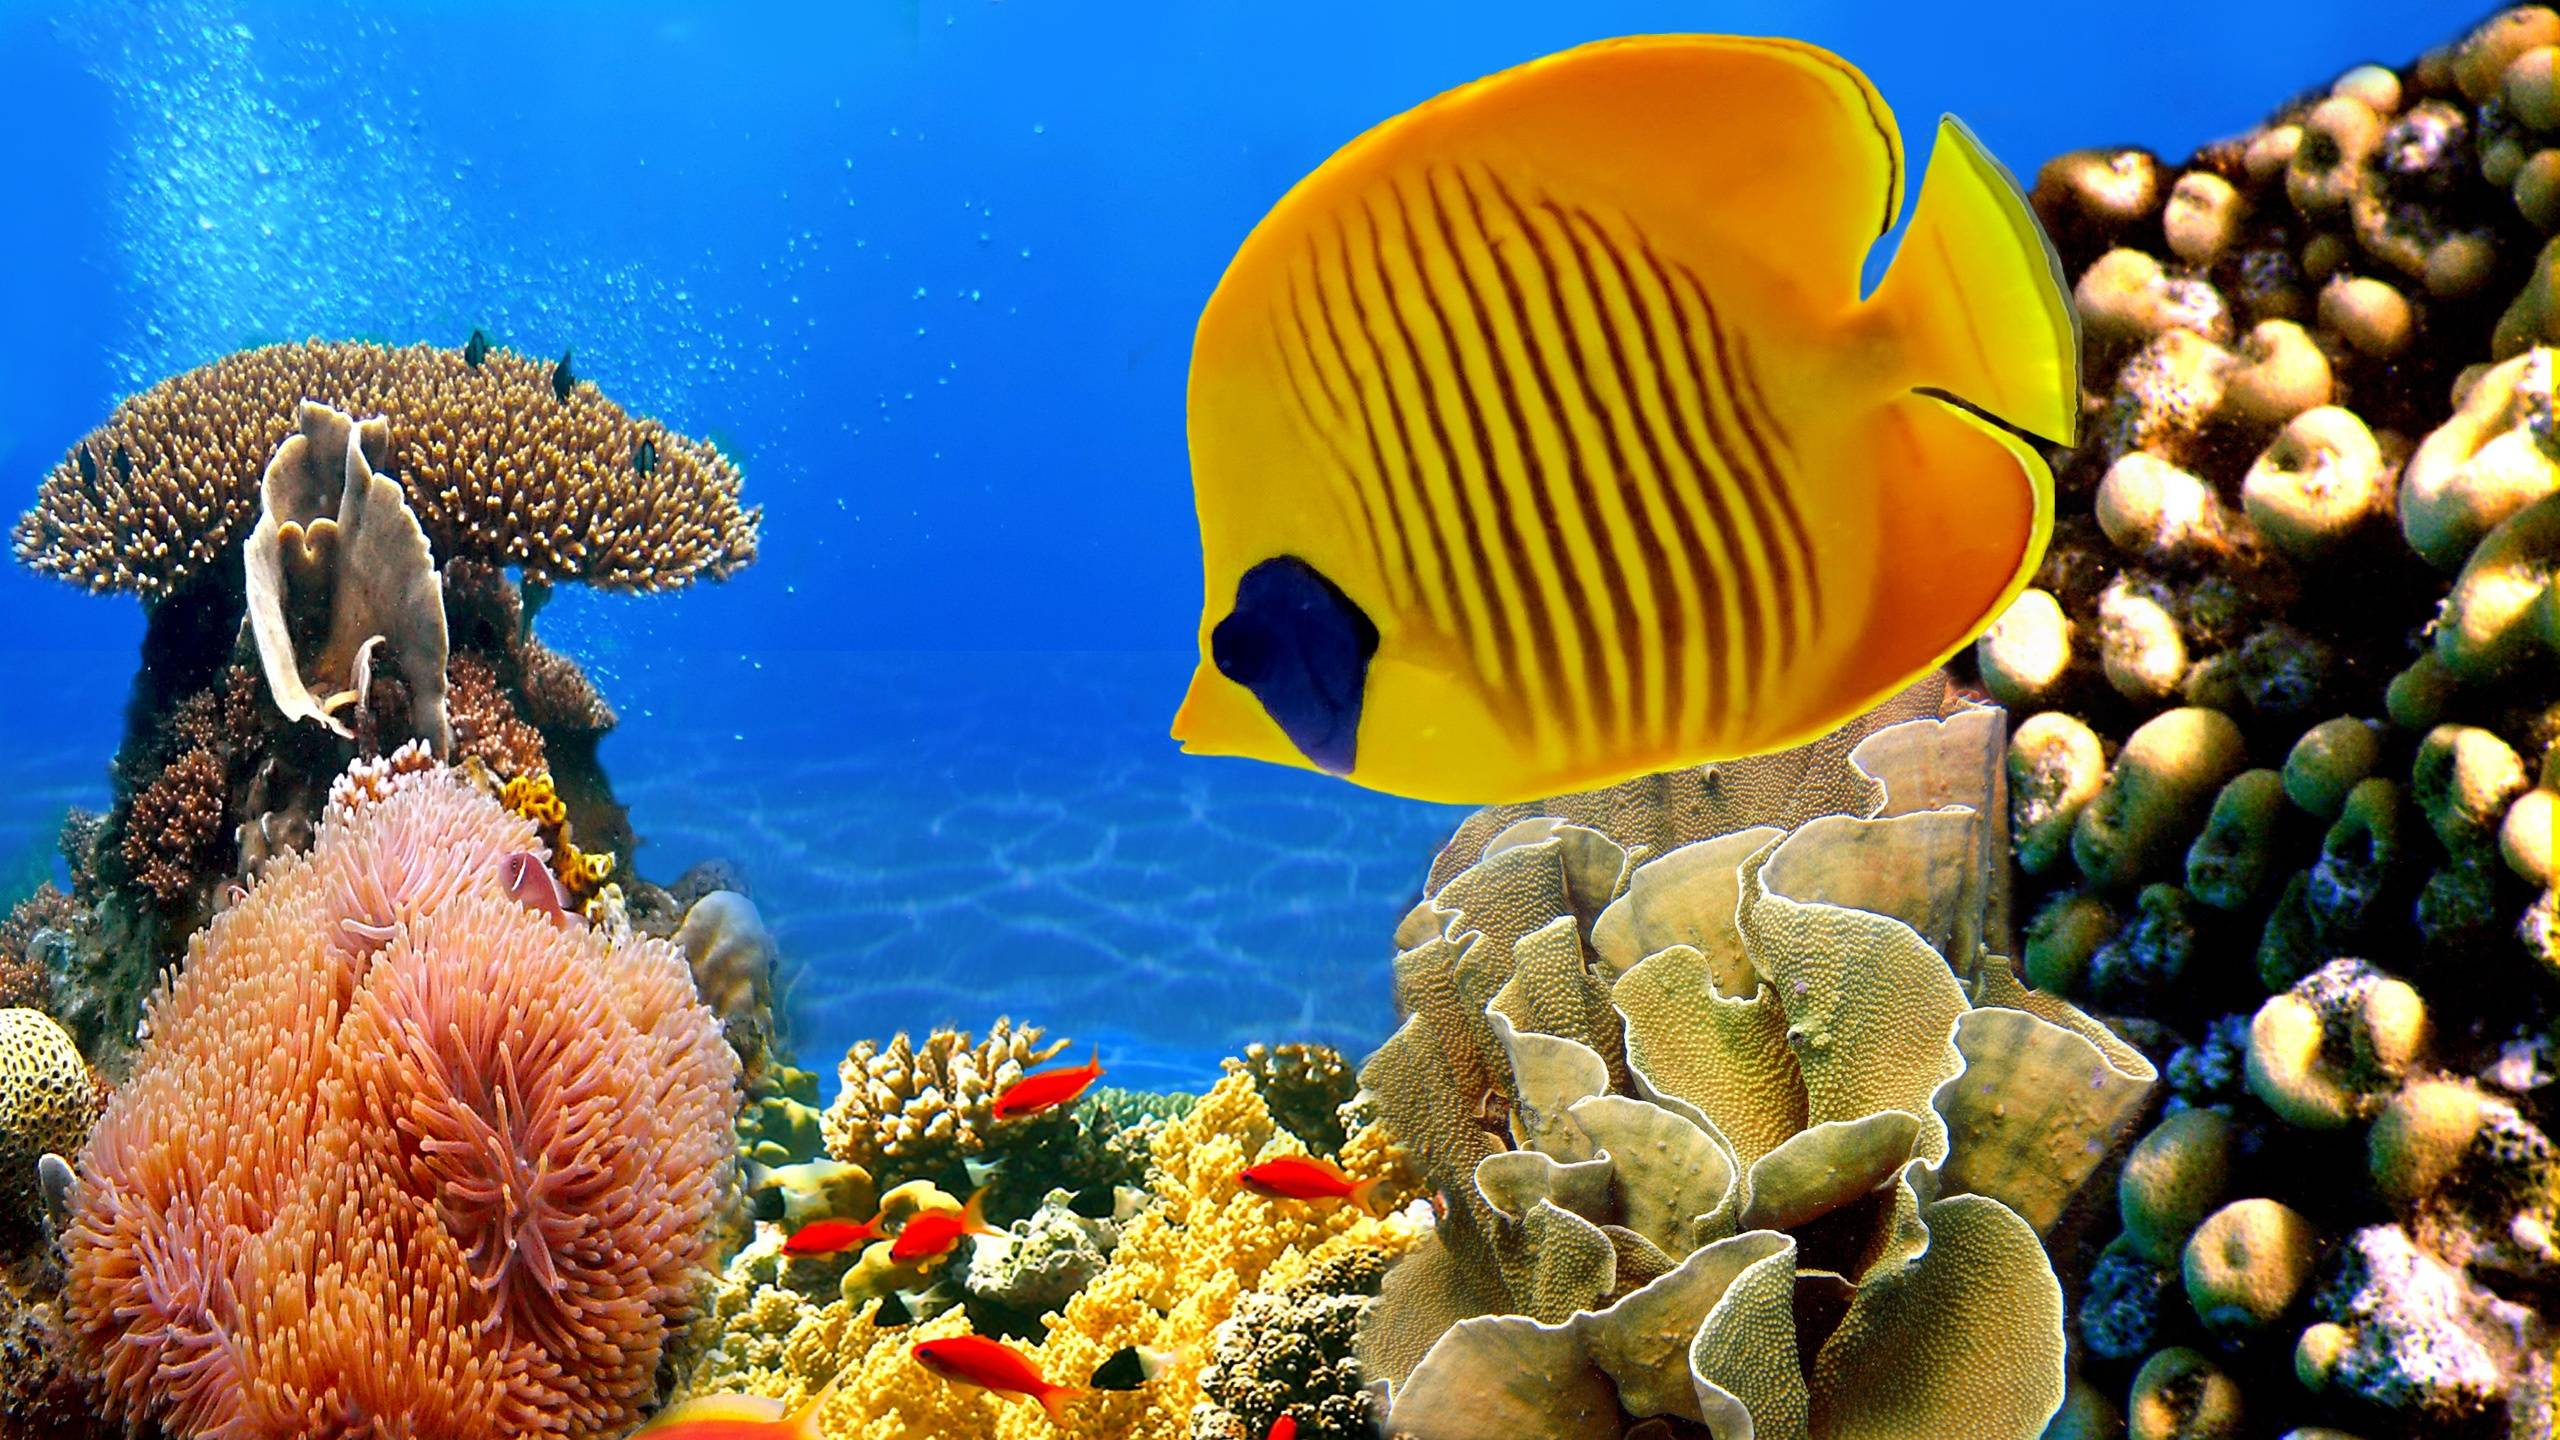 Coral Reef Wallpapers 2560x1440